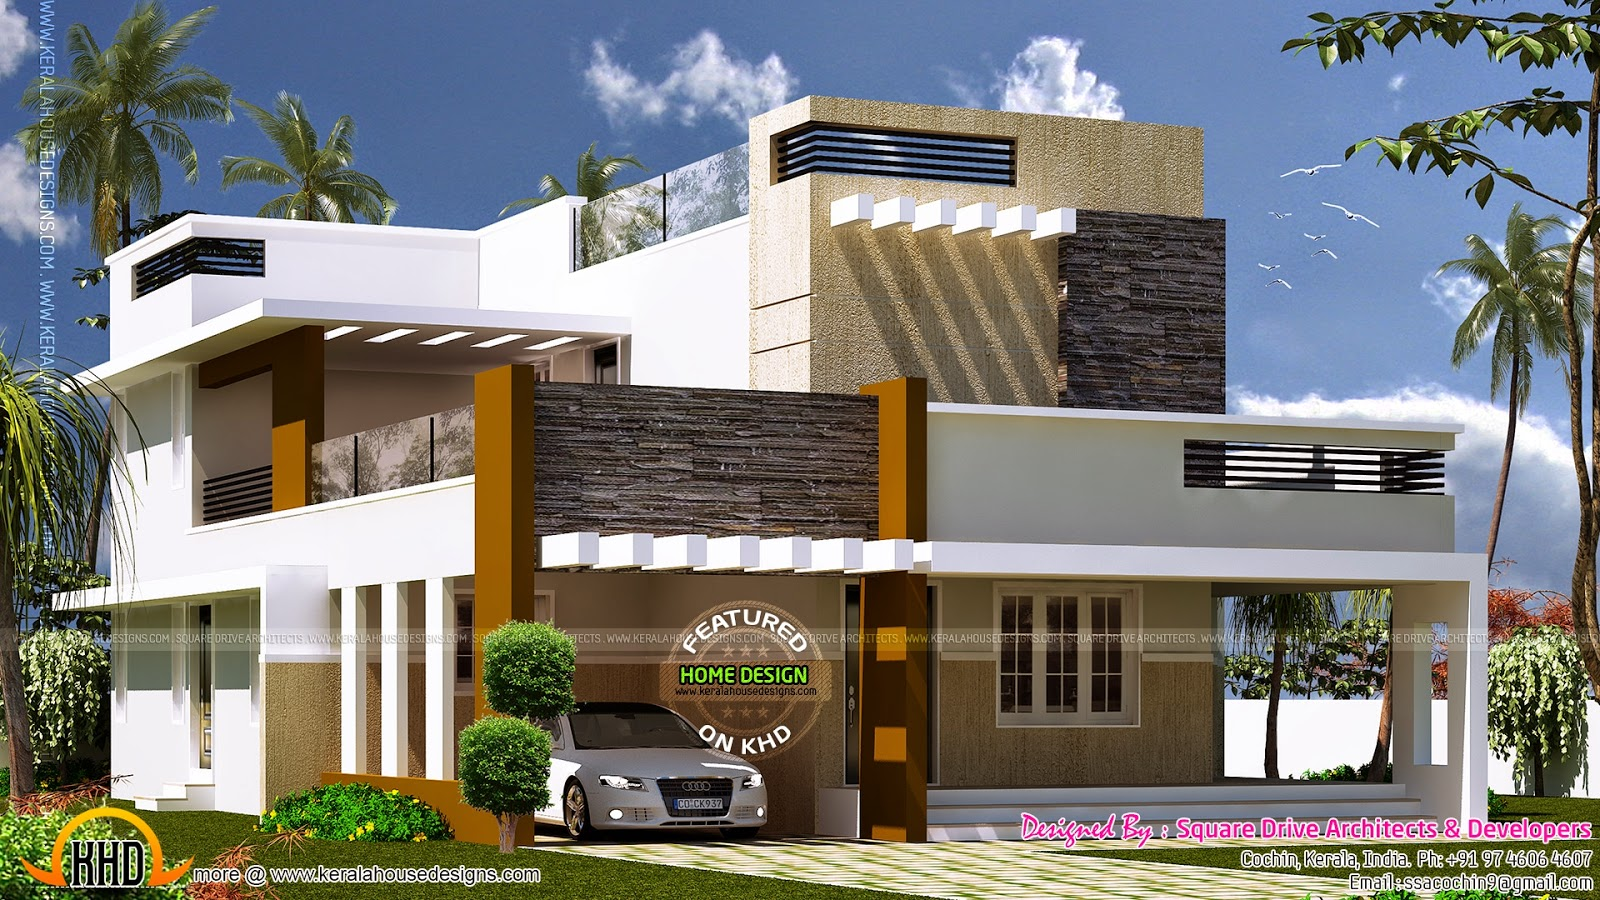 Duplex house plan india keralahousedesigns for Best duplex house plans in india